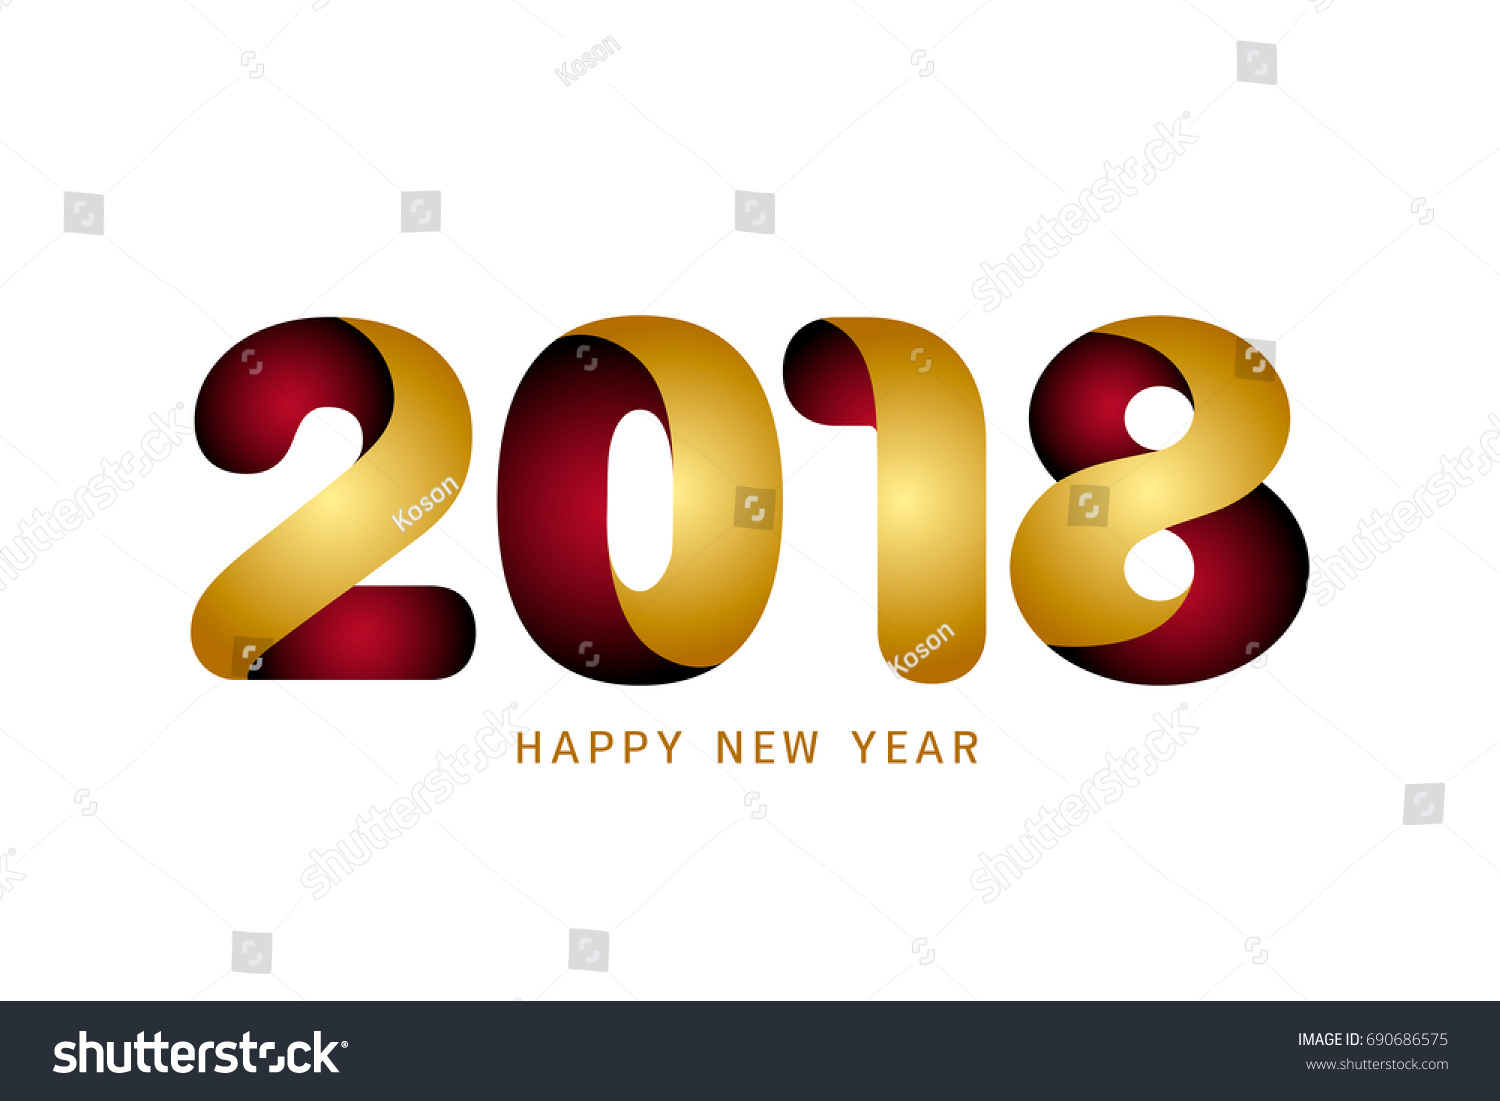 happy new year 2018 text design modern golden and red text design on white background